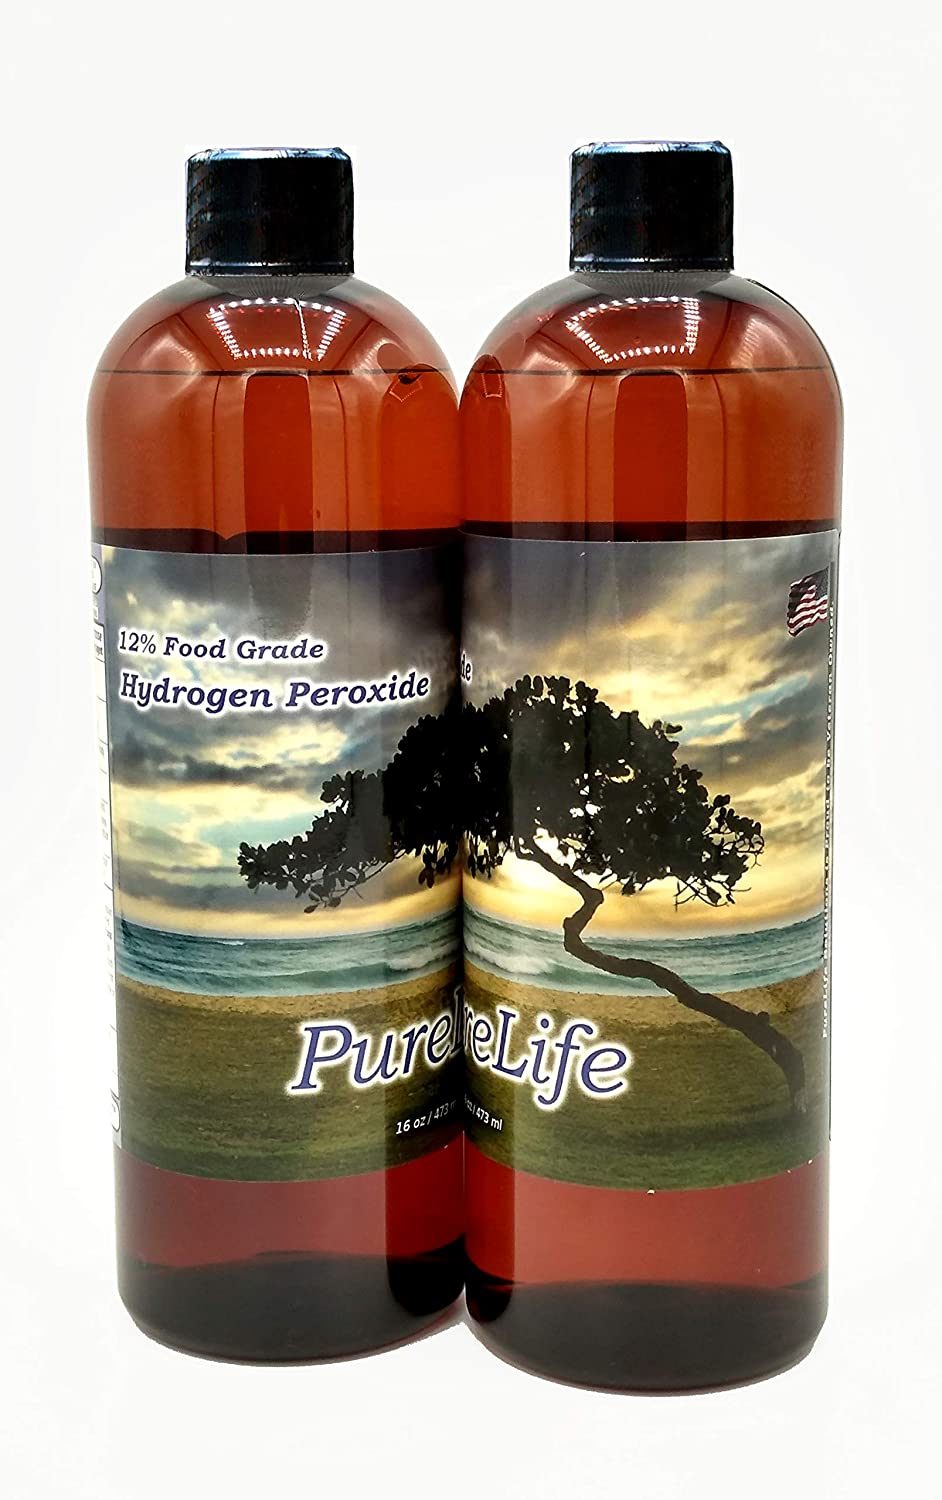 PureLife 12% Hydrogen Peroxide Food Grade - Rapid Daily Shipping - Hydrogen Peroxide 12 Percent in Distilled Water with No Added Stabilizers (32 Oz)